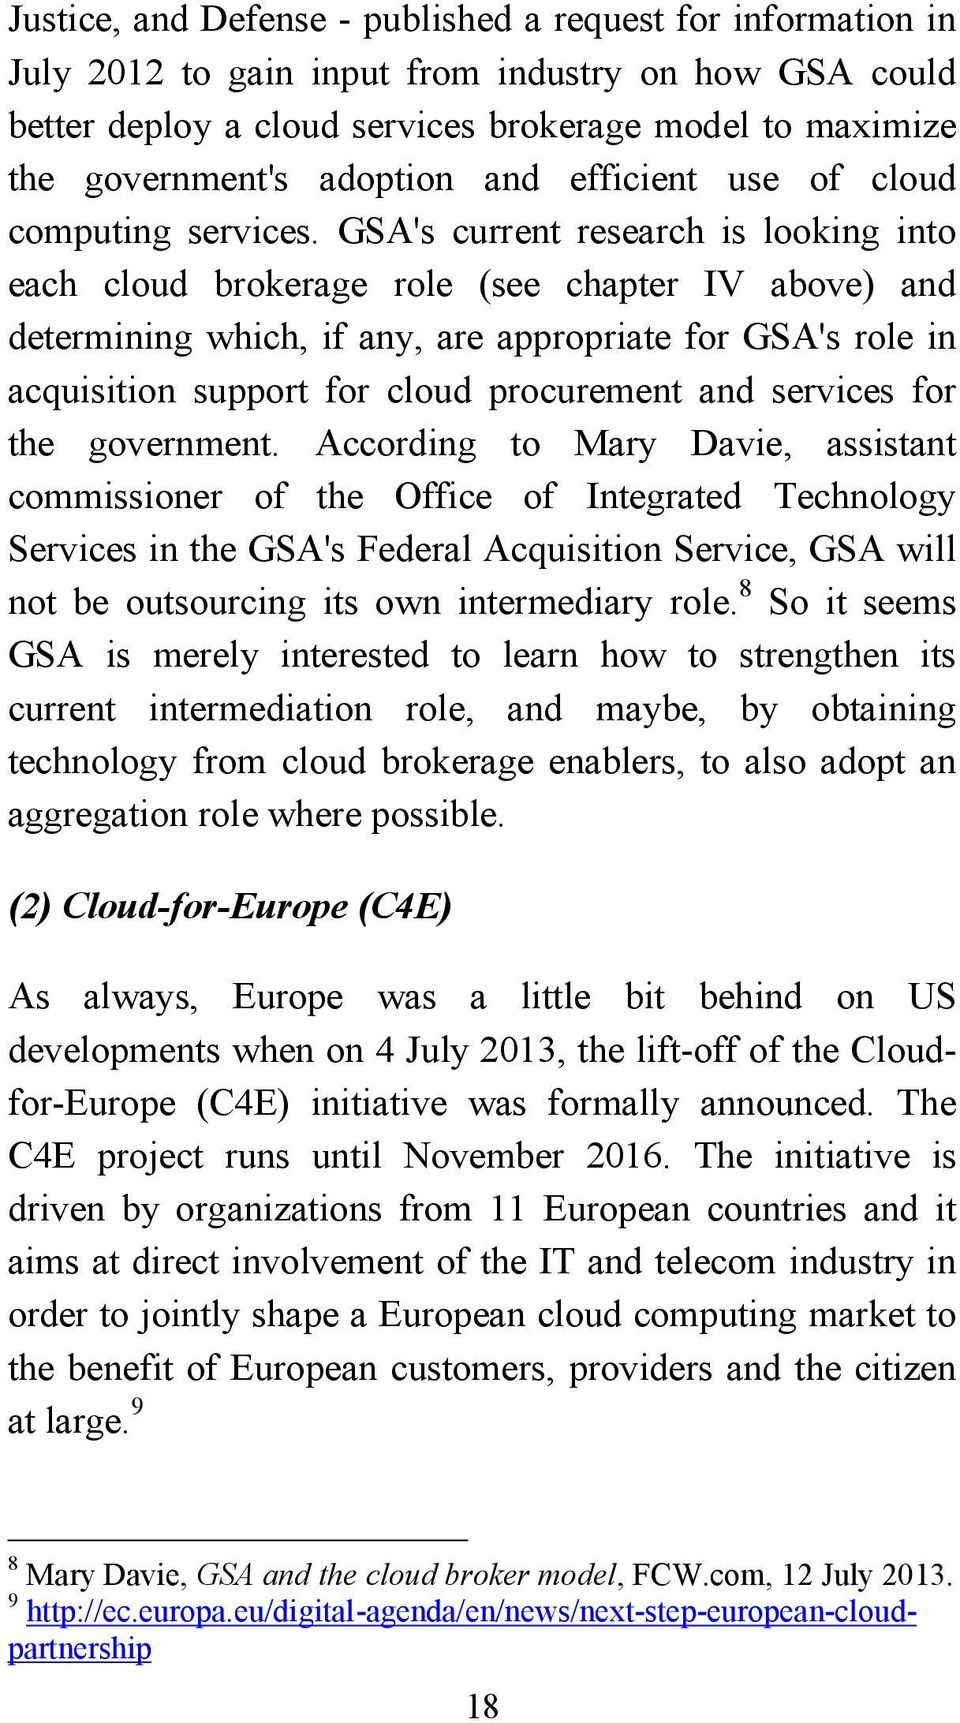 GSA's current research is looking into each cloud brokerage role (see chapter IV above) and determining which, if any, are appropriate for GSA's role in acquisition support for cloud procurement and